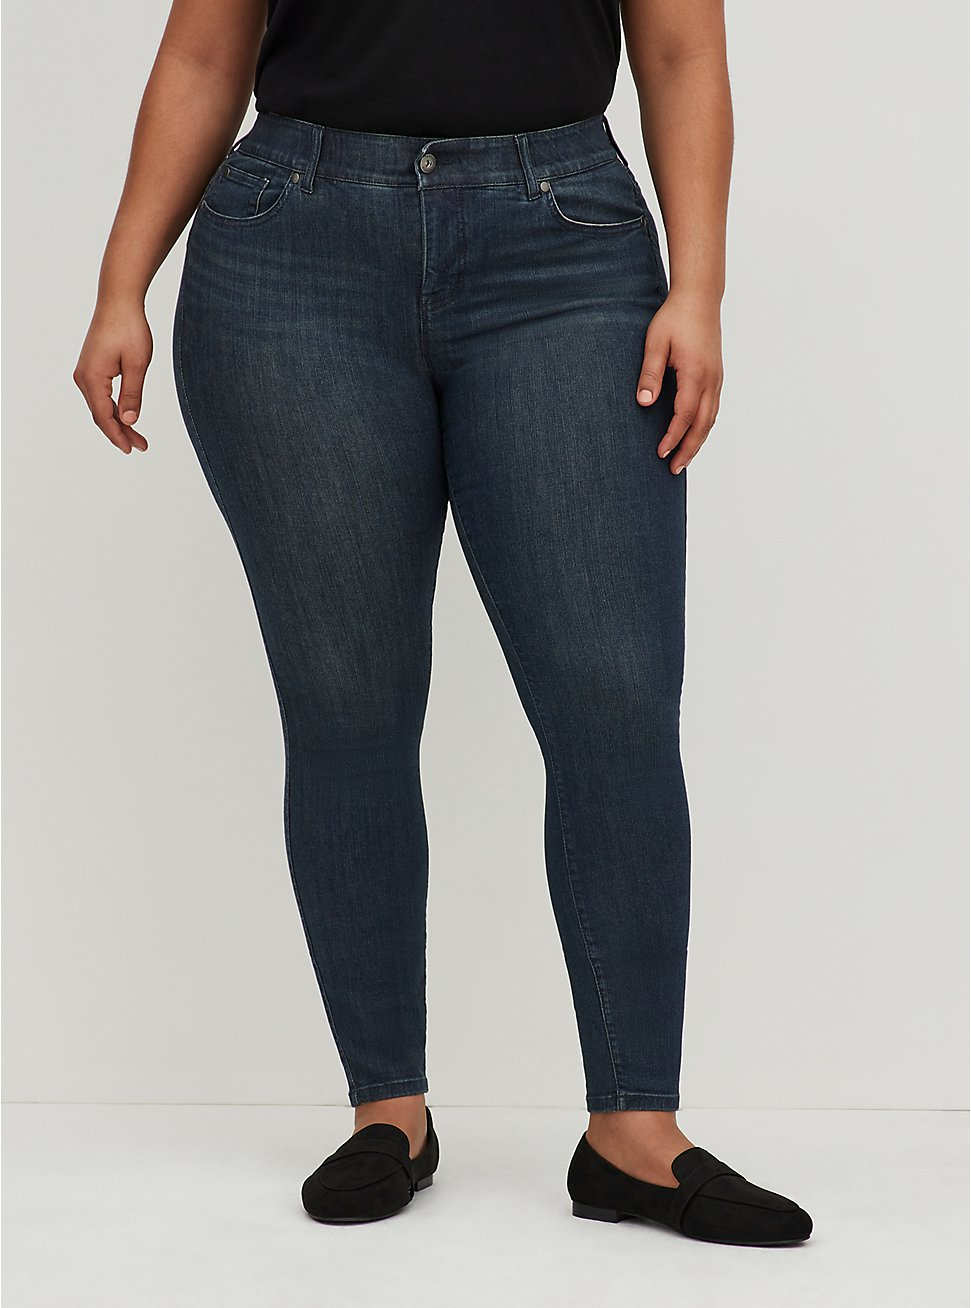 Plus Size Bombshell Skinny Jean - Premium Stretch Dark Wash, CLEAN DARK, hi-res